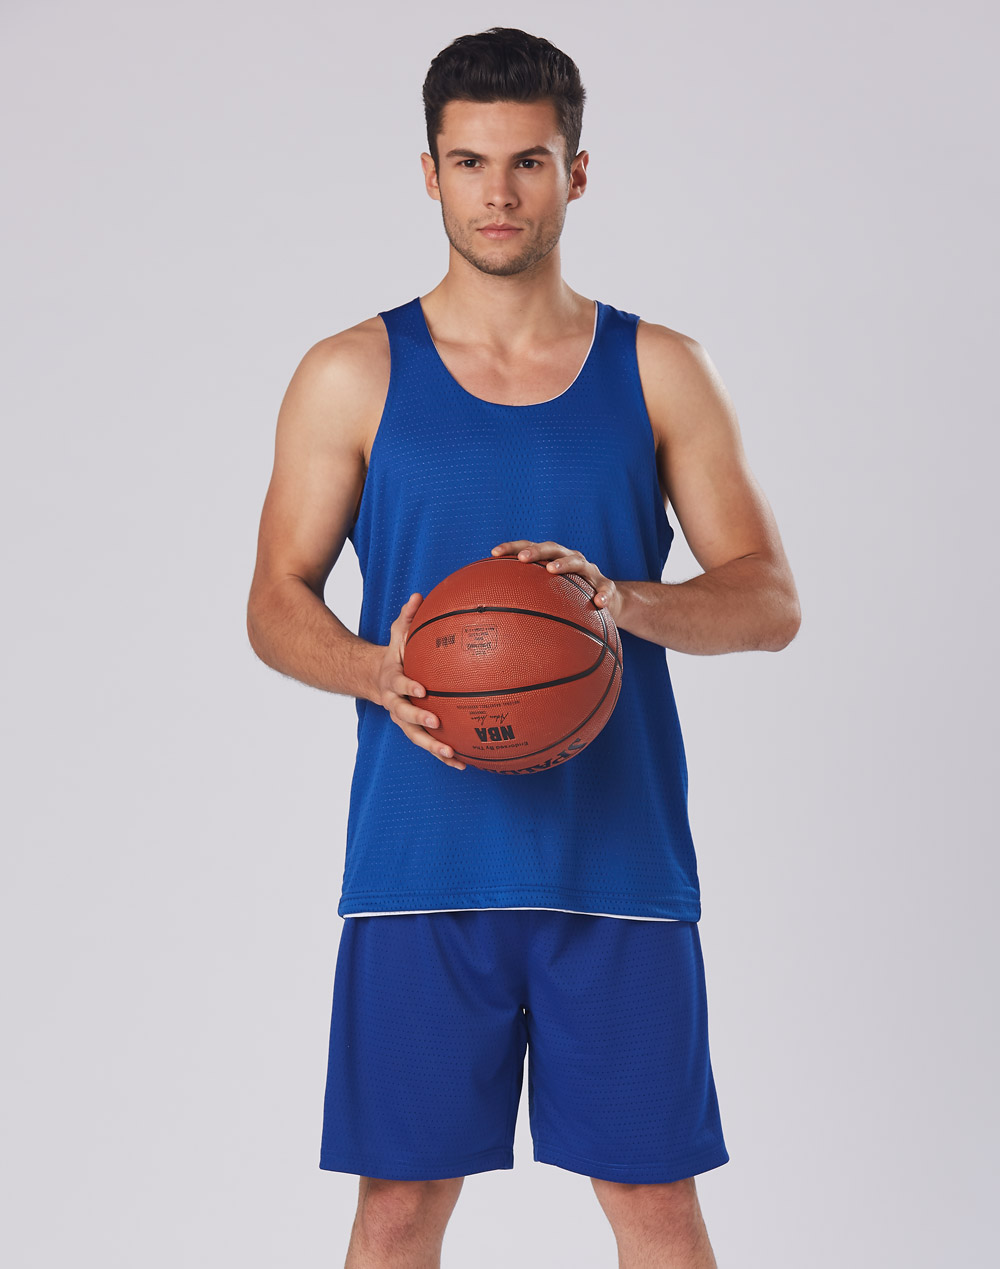 TS81 AIRPASS SINGLET Adult